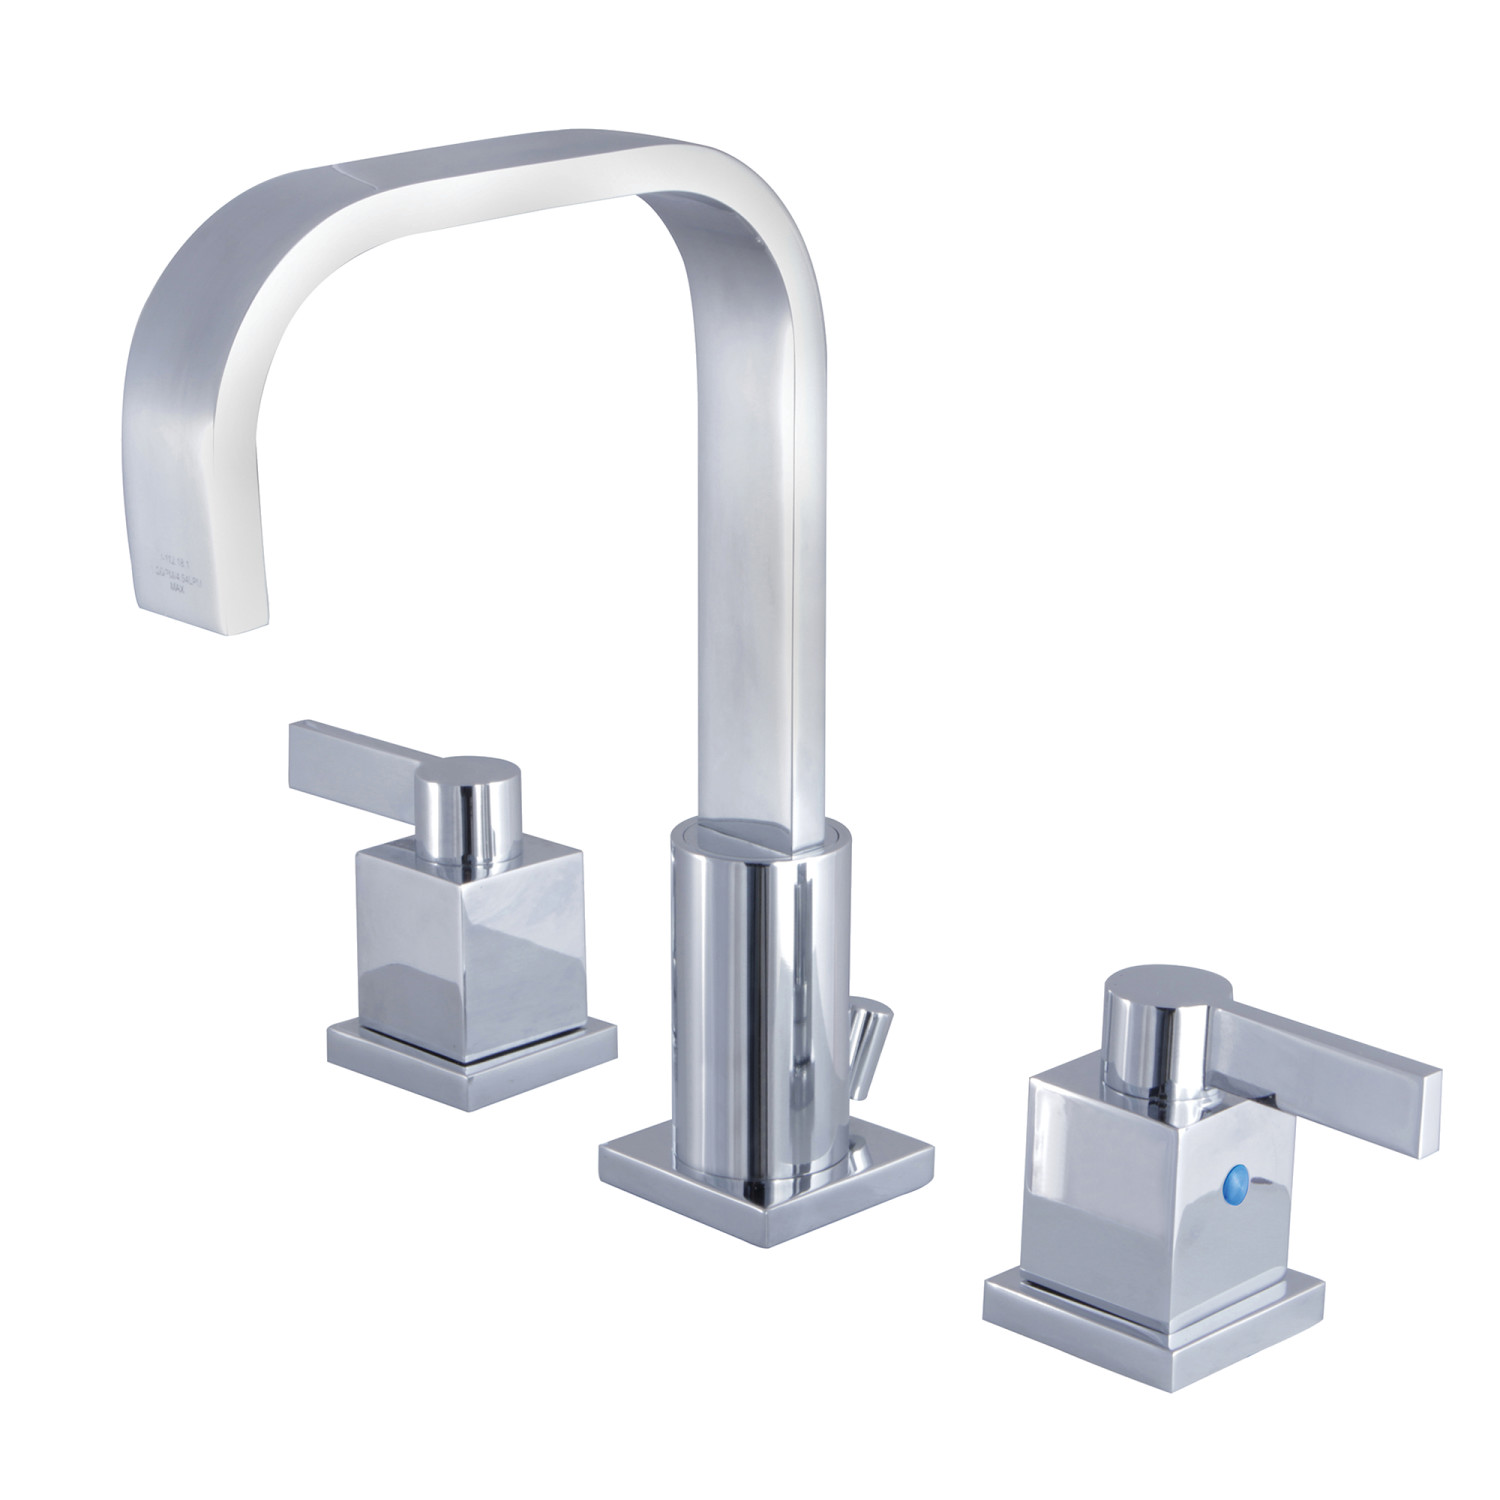 Modern 2-Handle 3-Hole Deck Mounted Widespread Bathroom Faucet with Plastic Pop-Up in Polished Chrome with 3 Finish Options